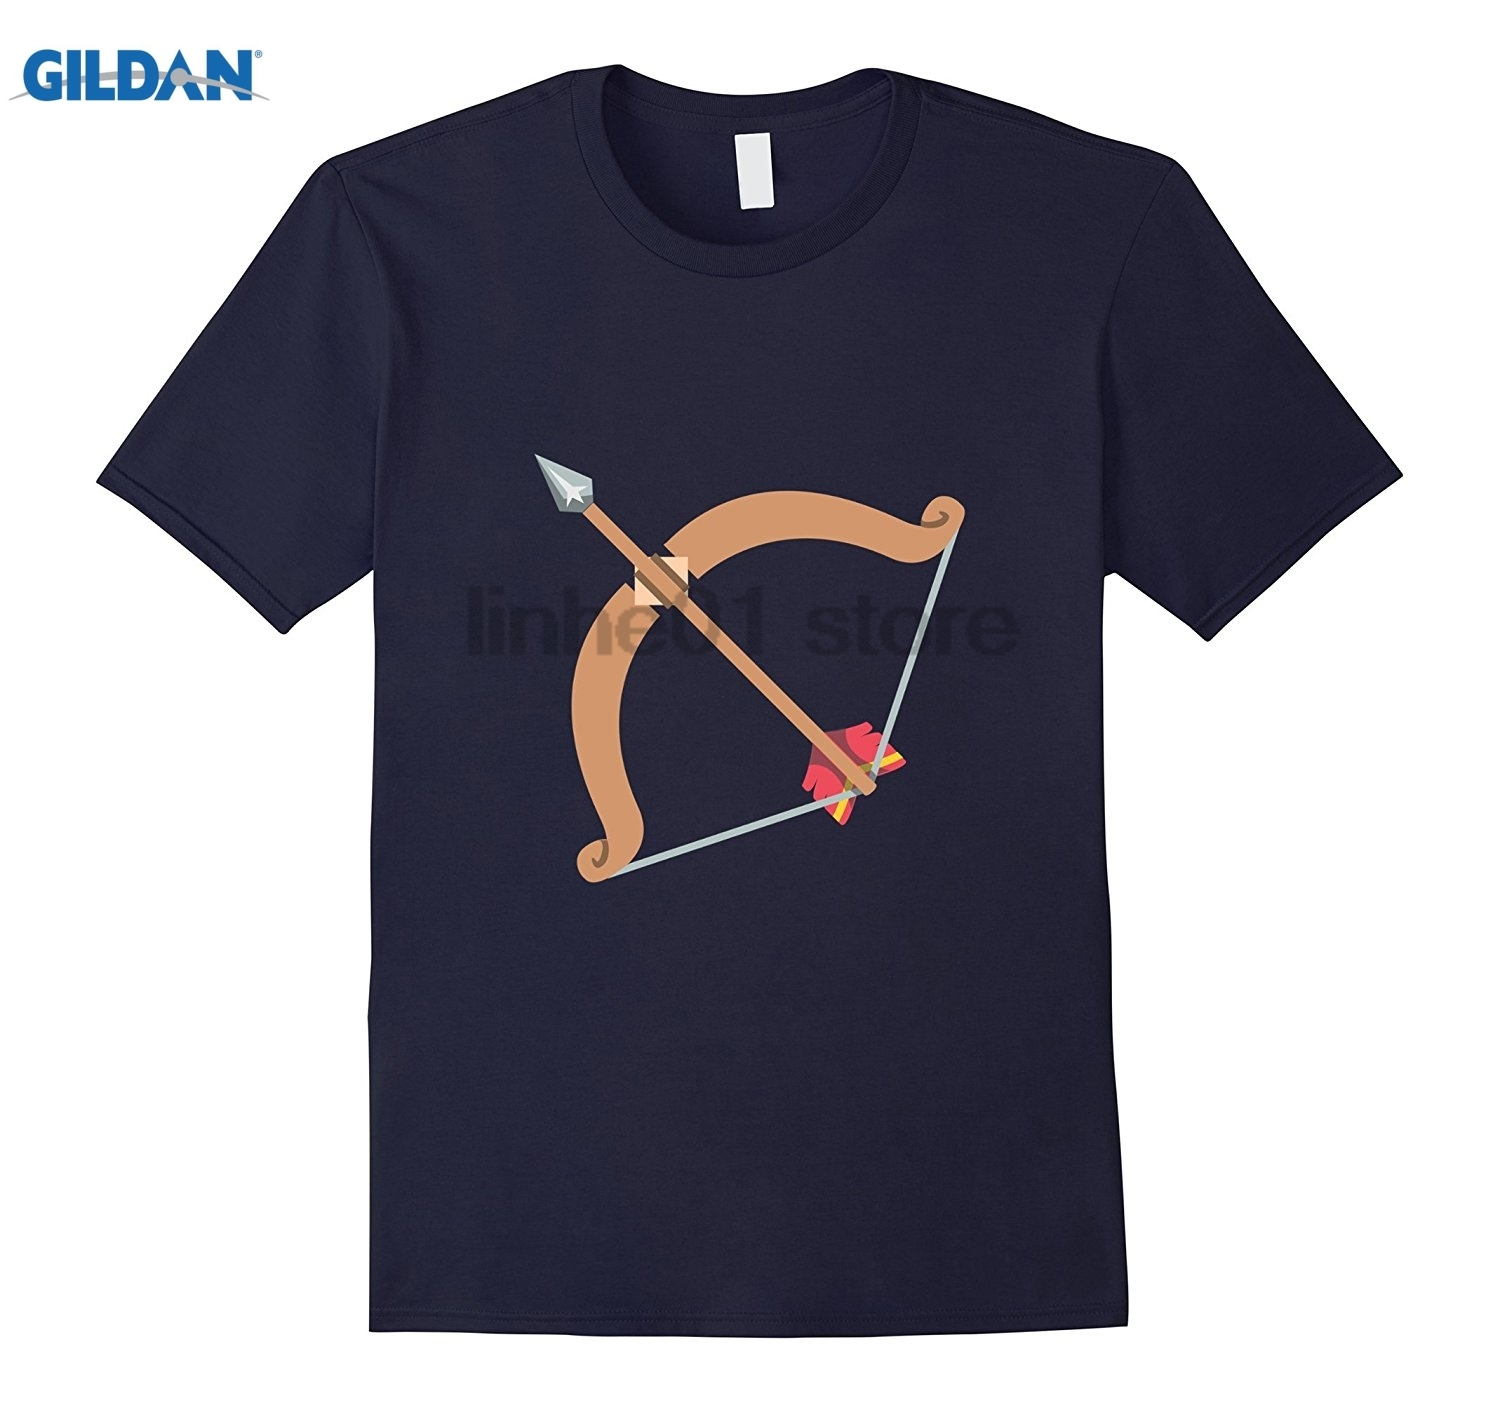 GILDAN Arc Archer Emoji Funny T Shirt Tee Archery Bow Shoot Target Hot Womens T-shirt